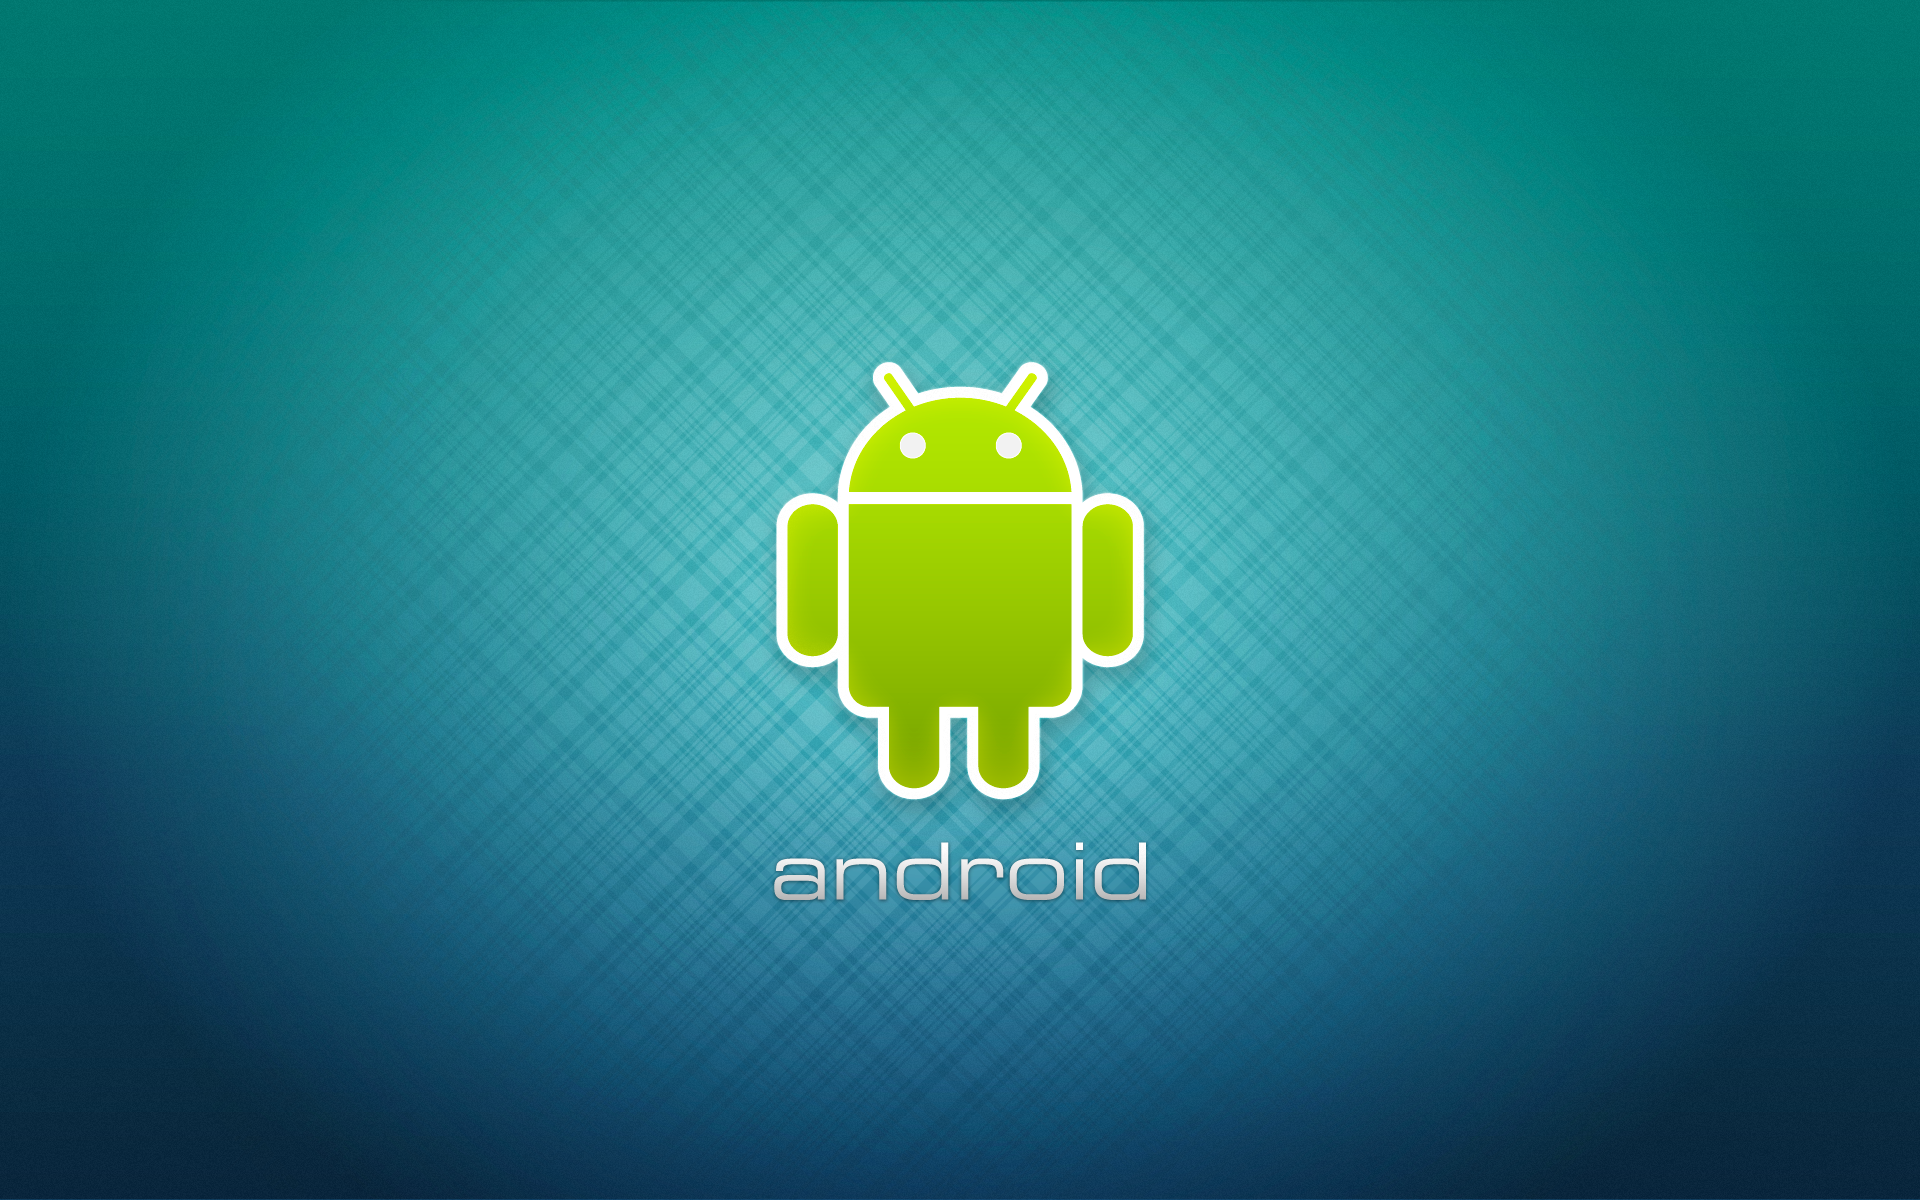 Download Android Live Wallpapers For Mobile Phones 1920x1200